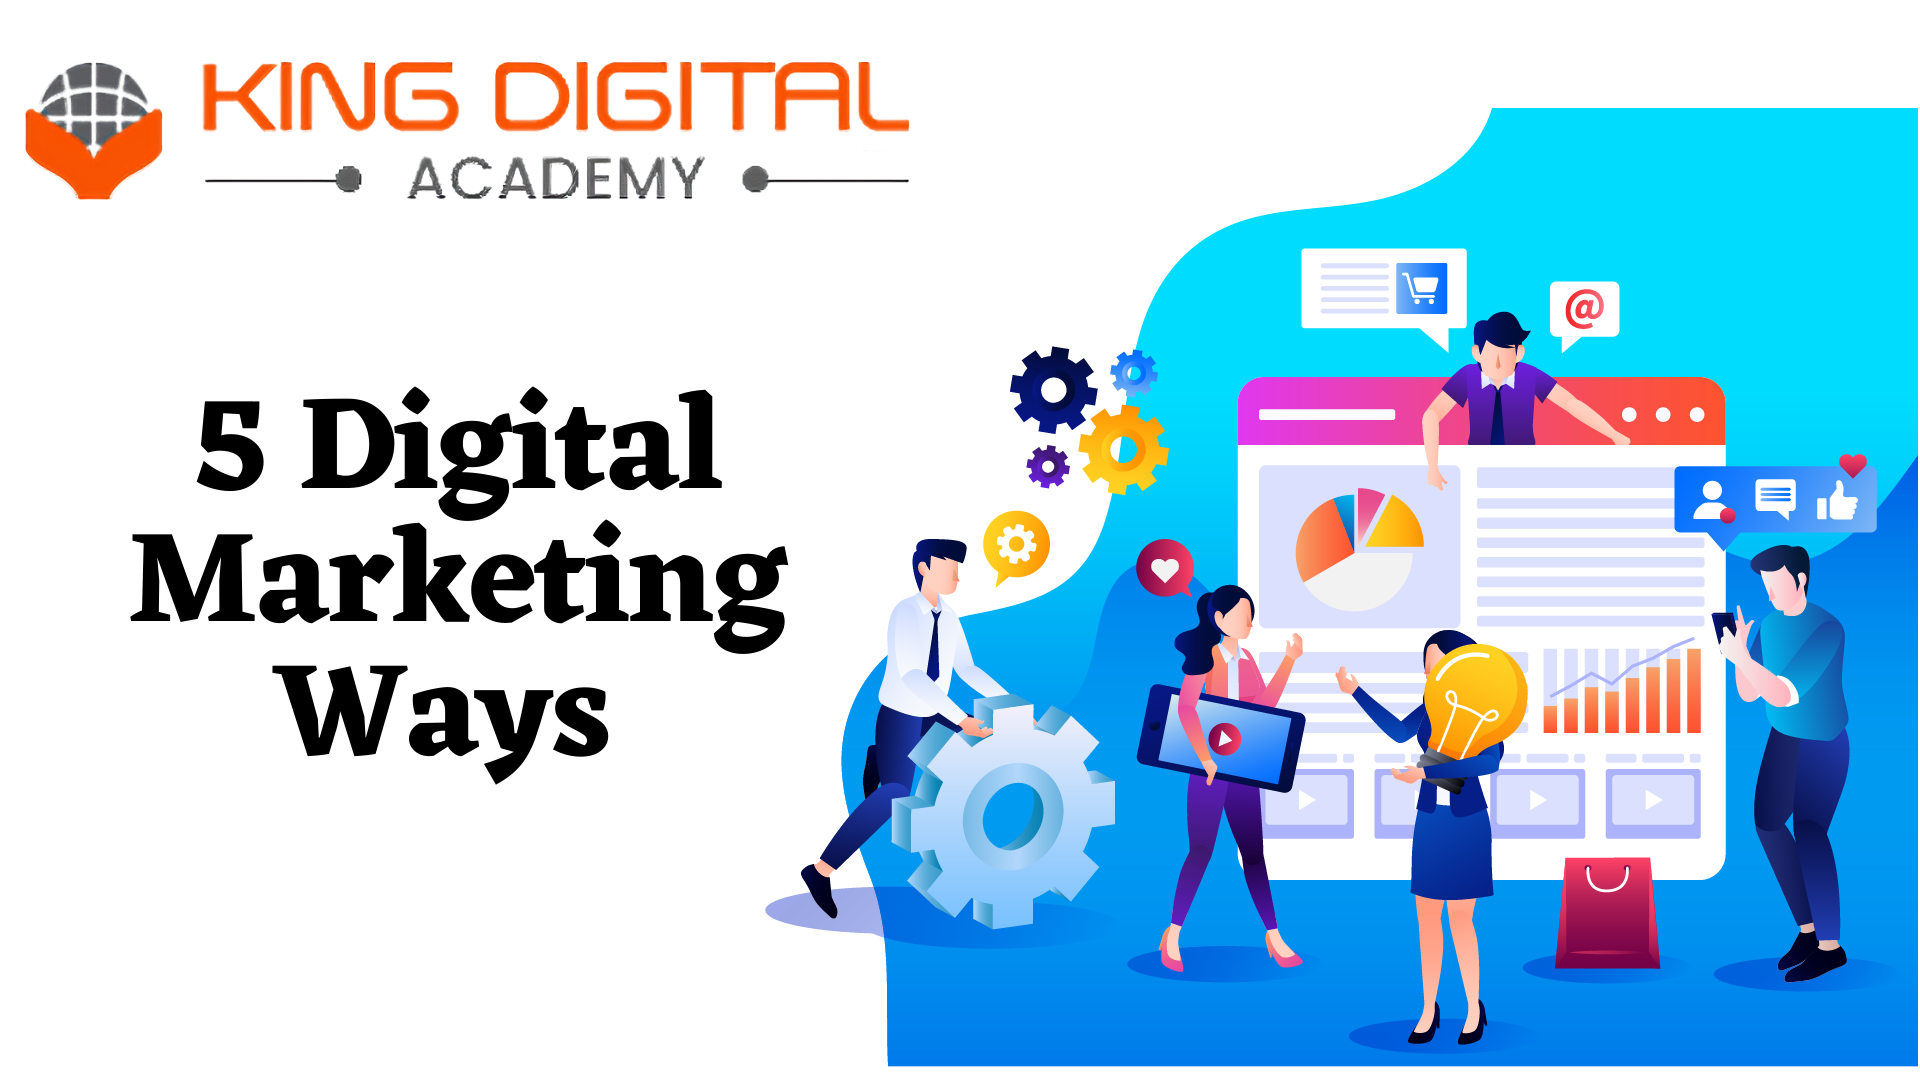 5 Digital Marketing Ways For the Growth of My Business